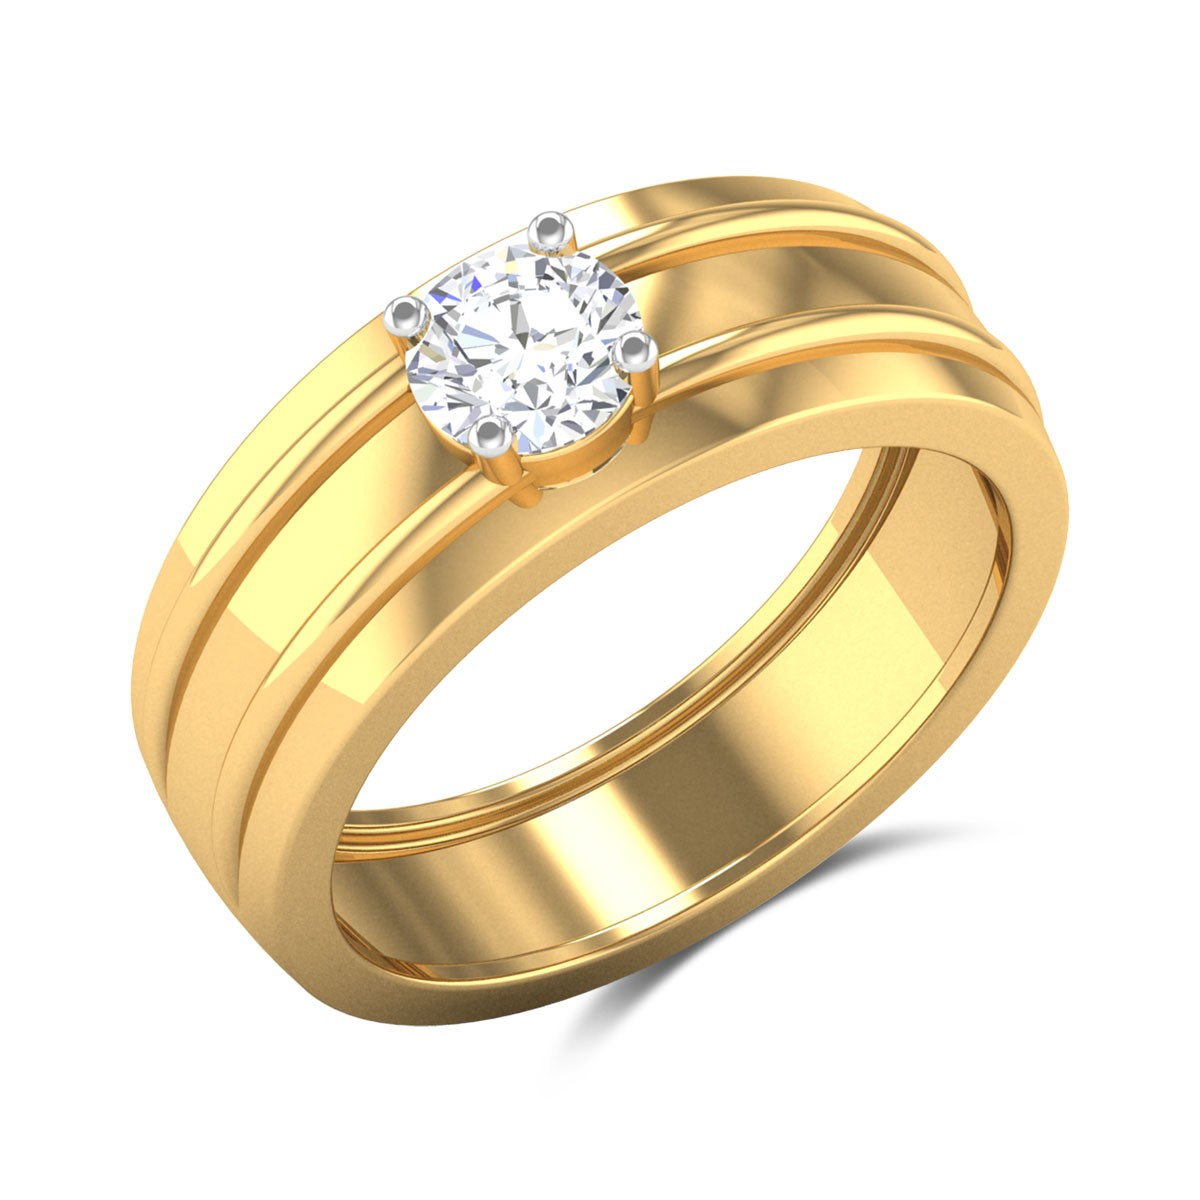 Carmela 4 Prong Solitaire Ring